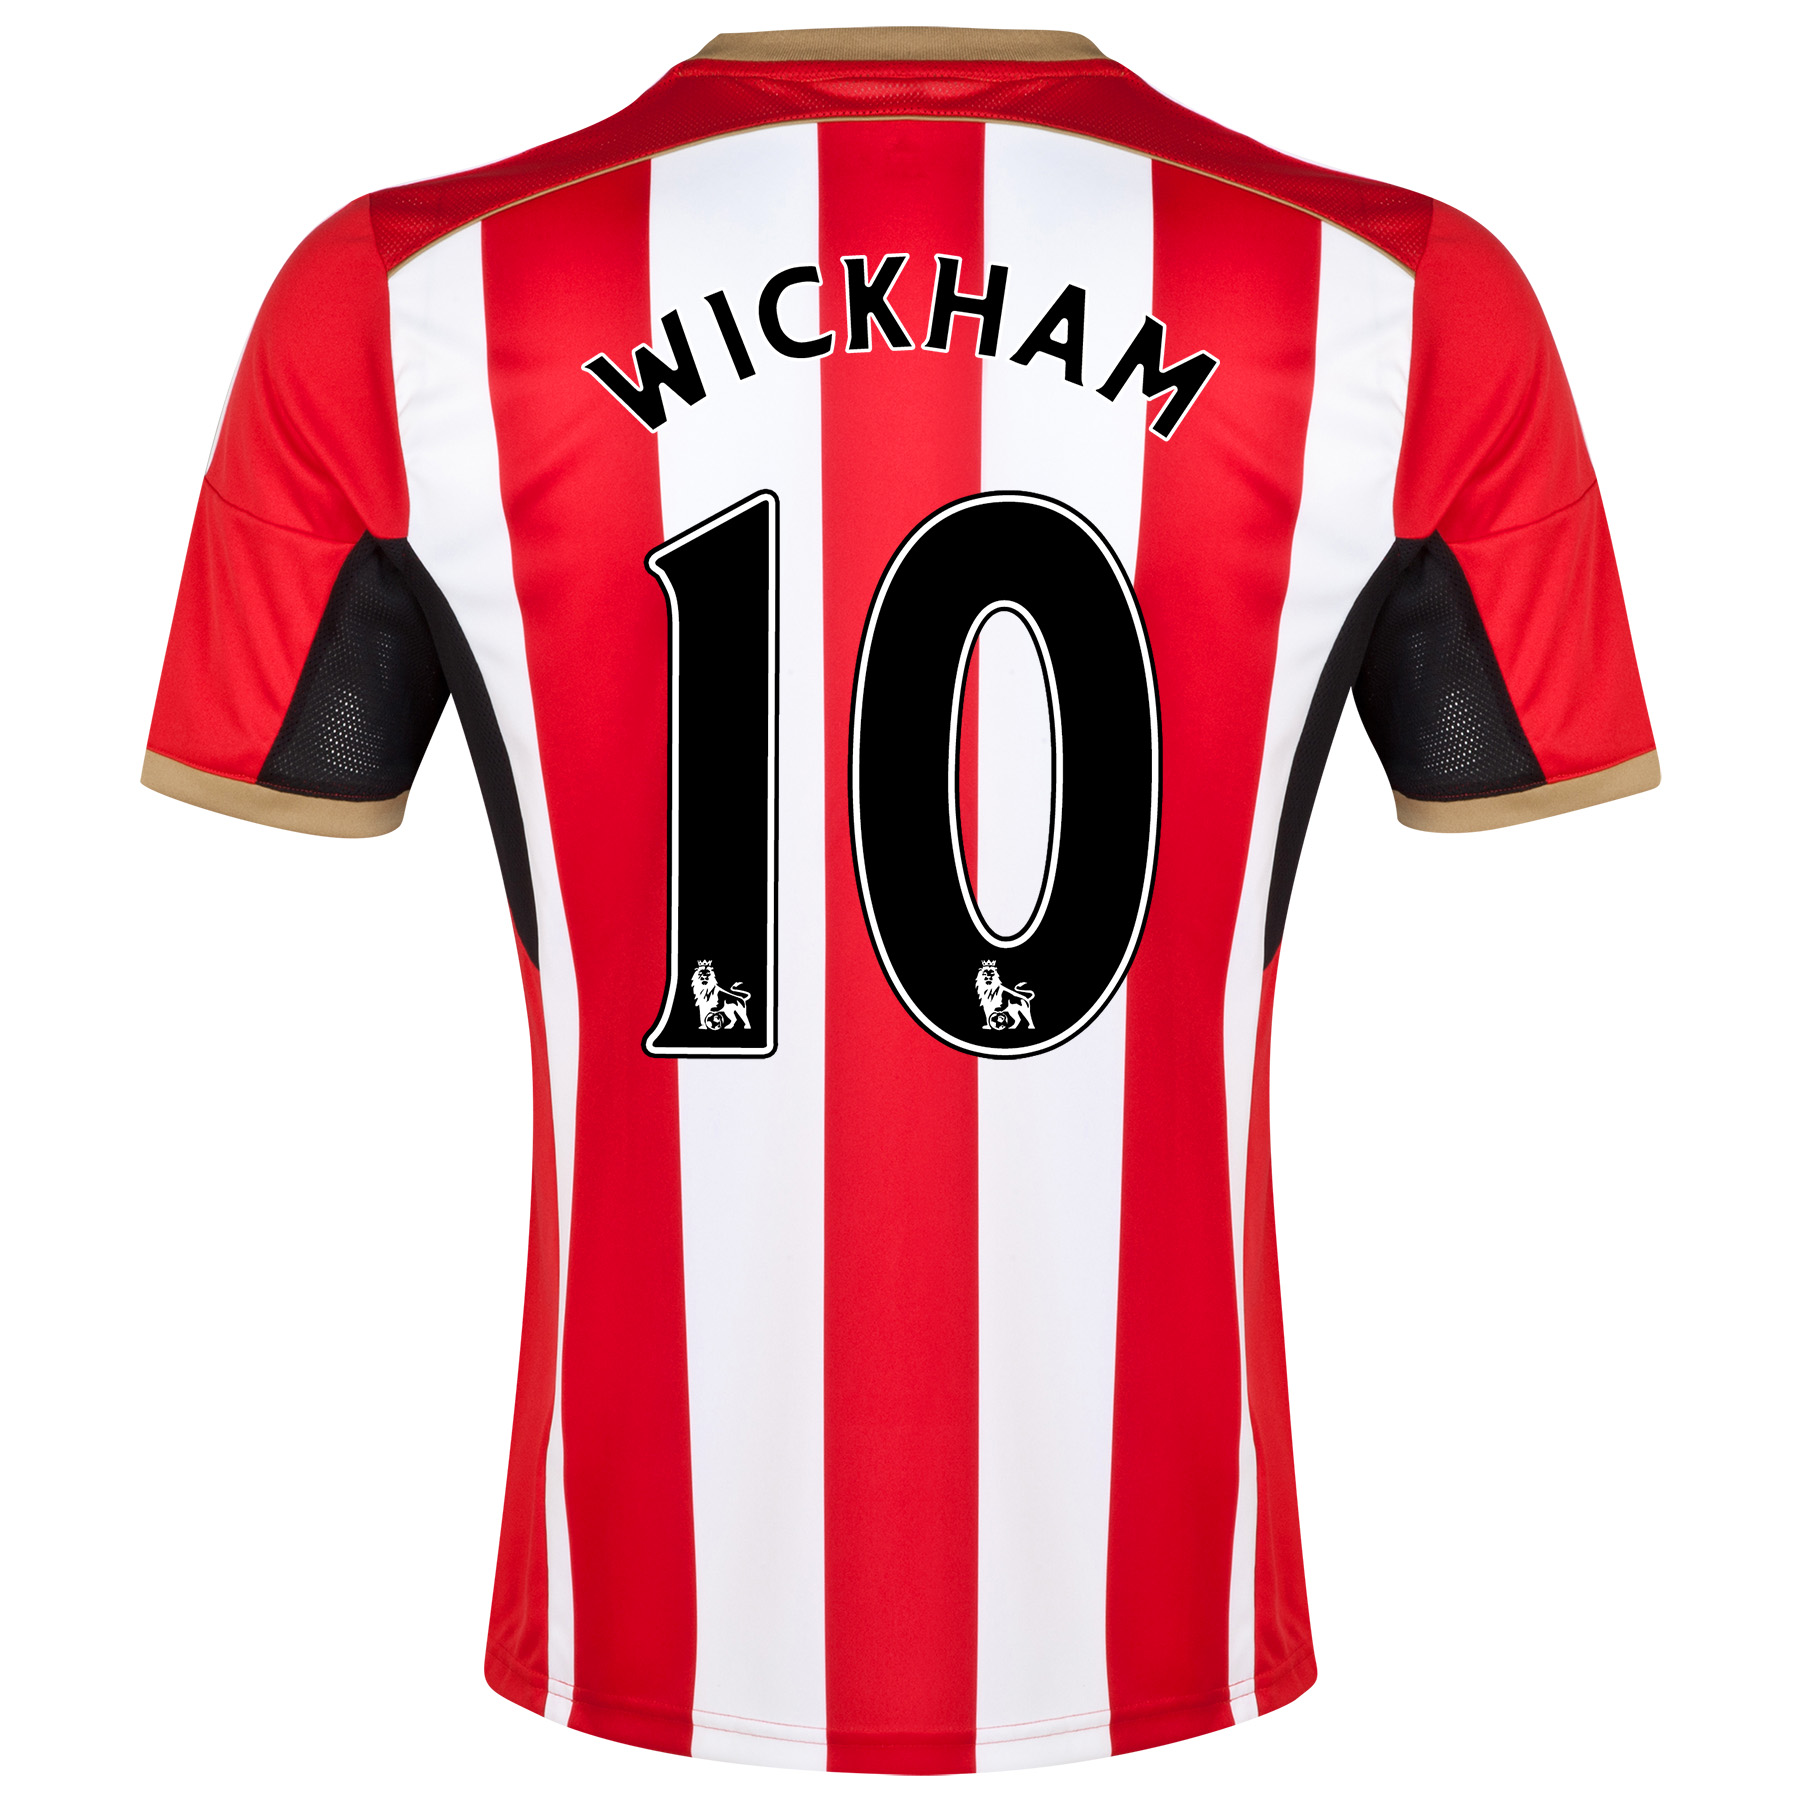 Sunderland Home Shirt 2014/15 Red with Wickham 10 printing